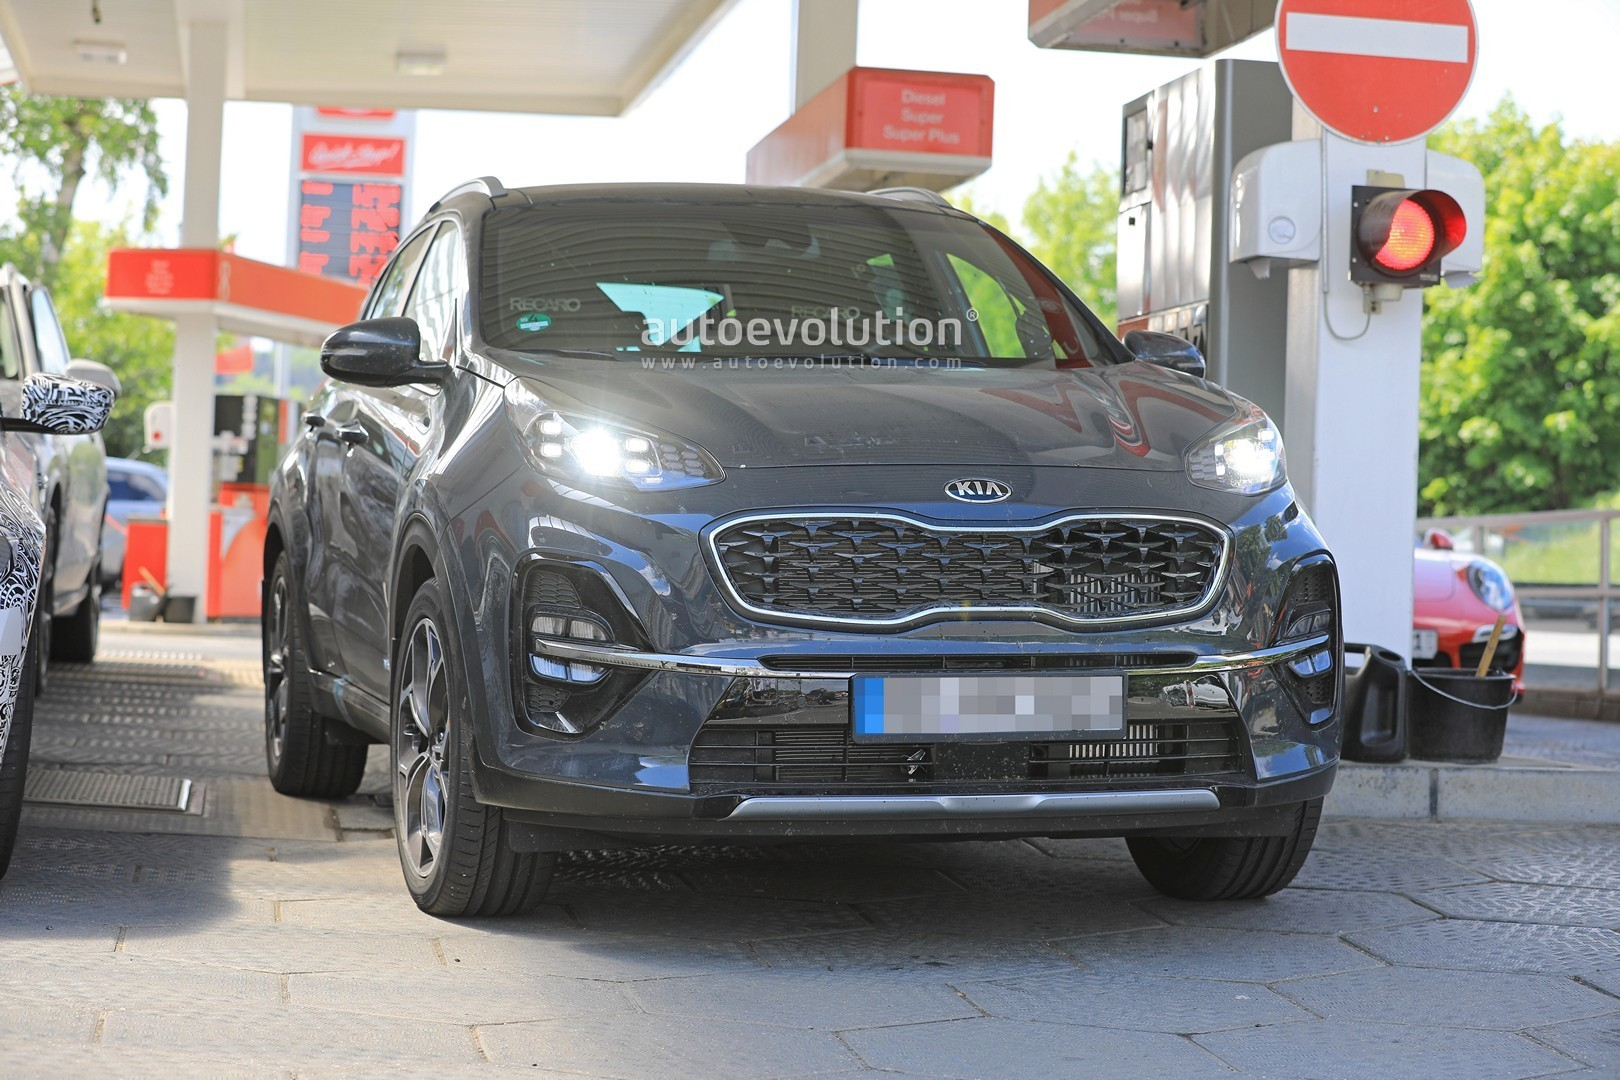 2019-kia-sportage-facelift-revealed-in-full-at-the-nurburgring_7